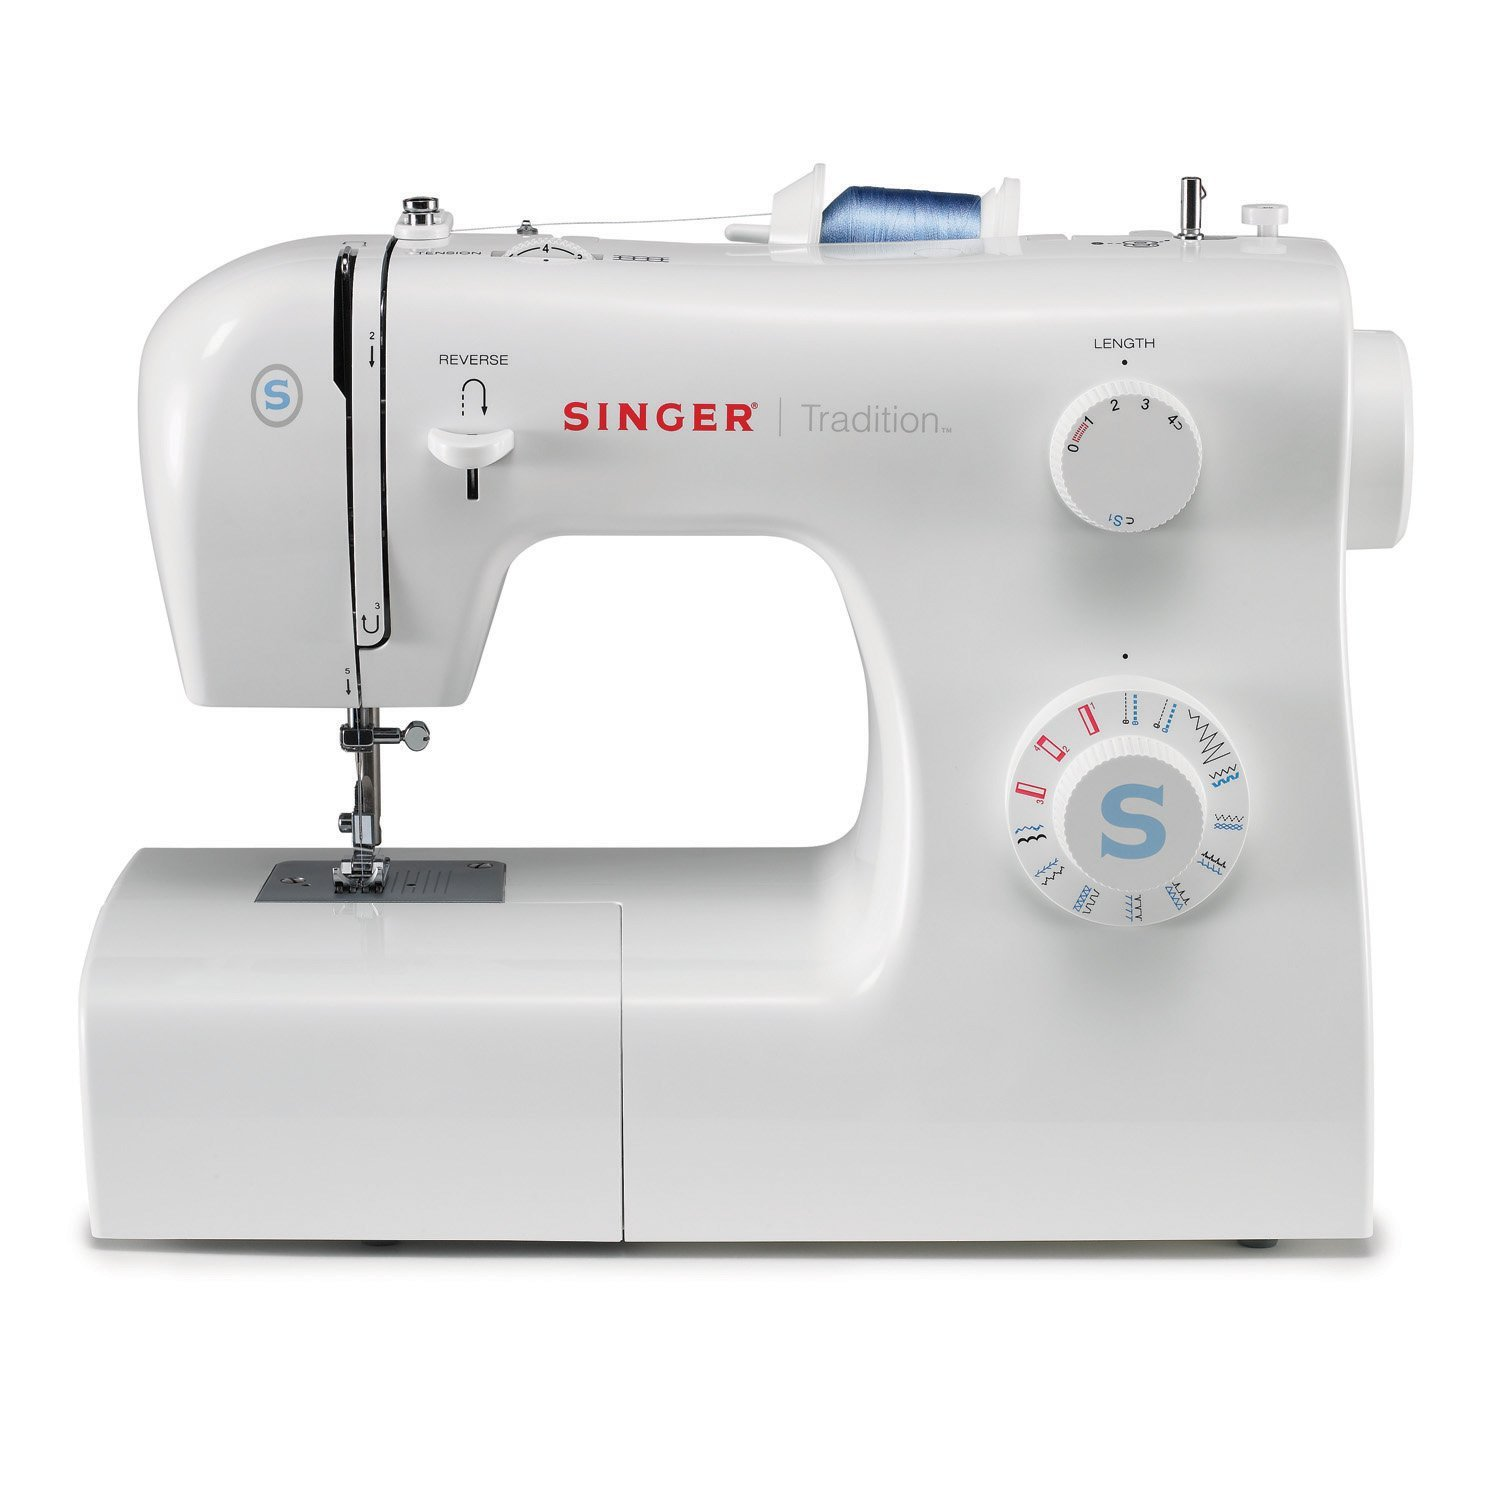 Image result for Top 10 Singer Sewing and Home Embroidery Machines (July 2018): Reviews & Buyers Guide